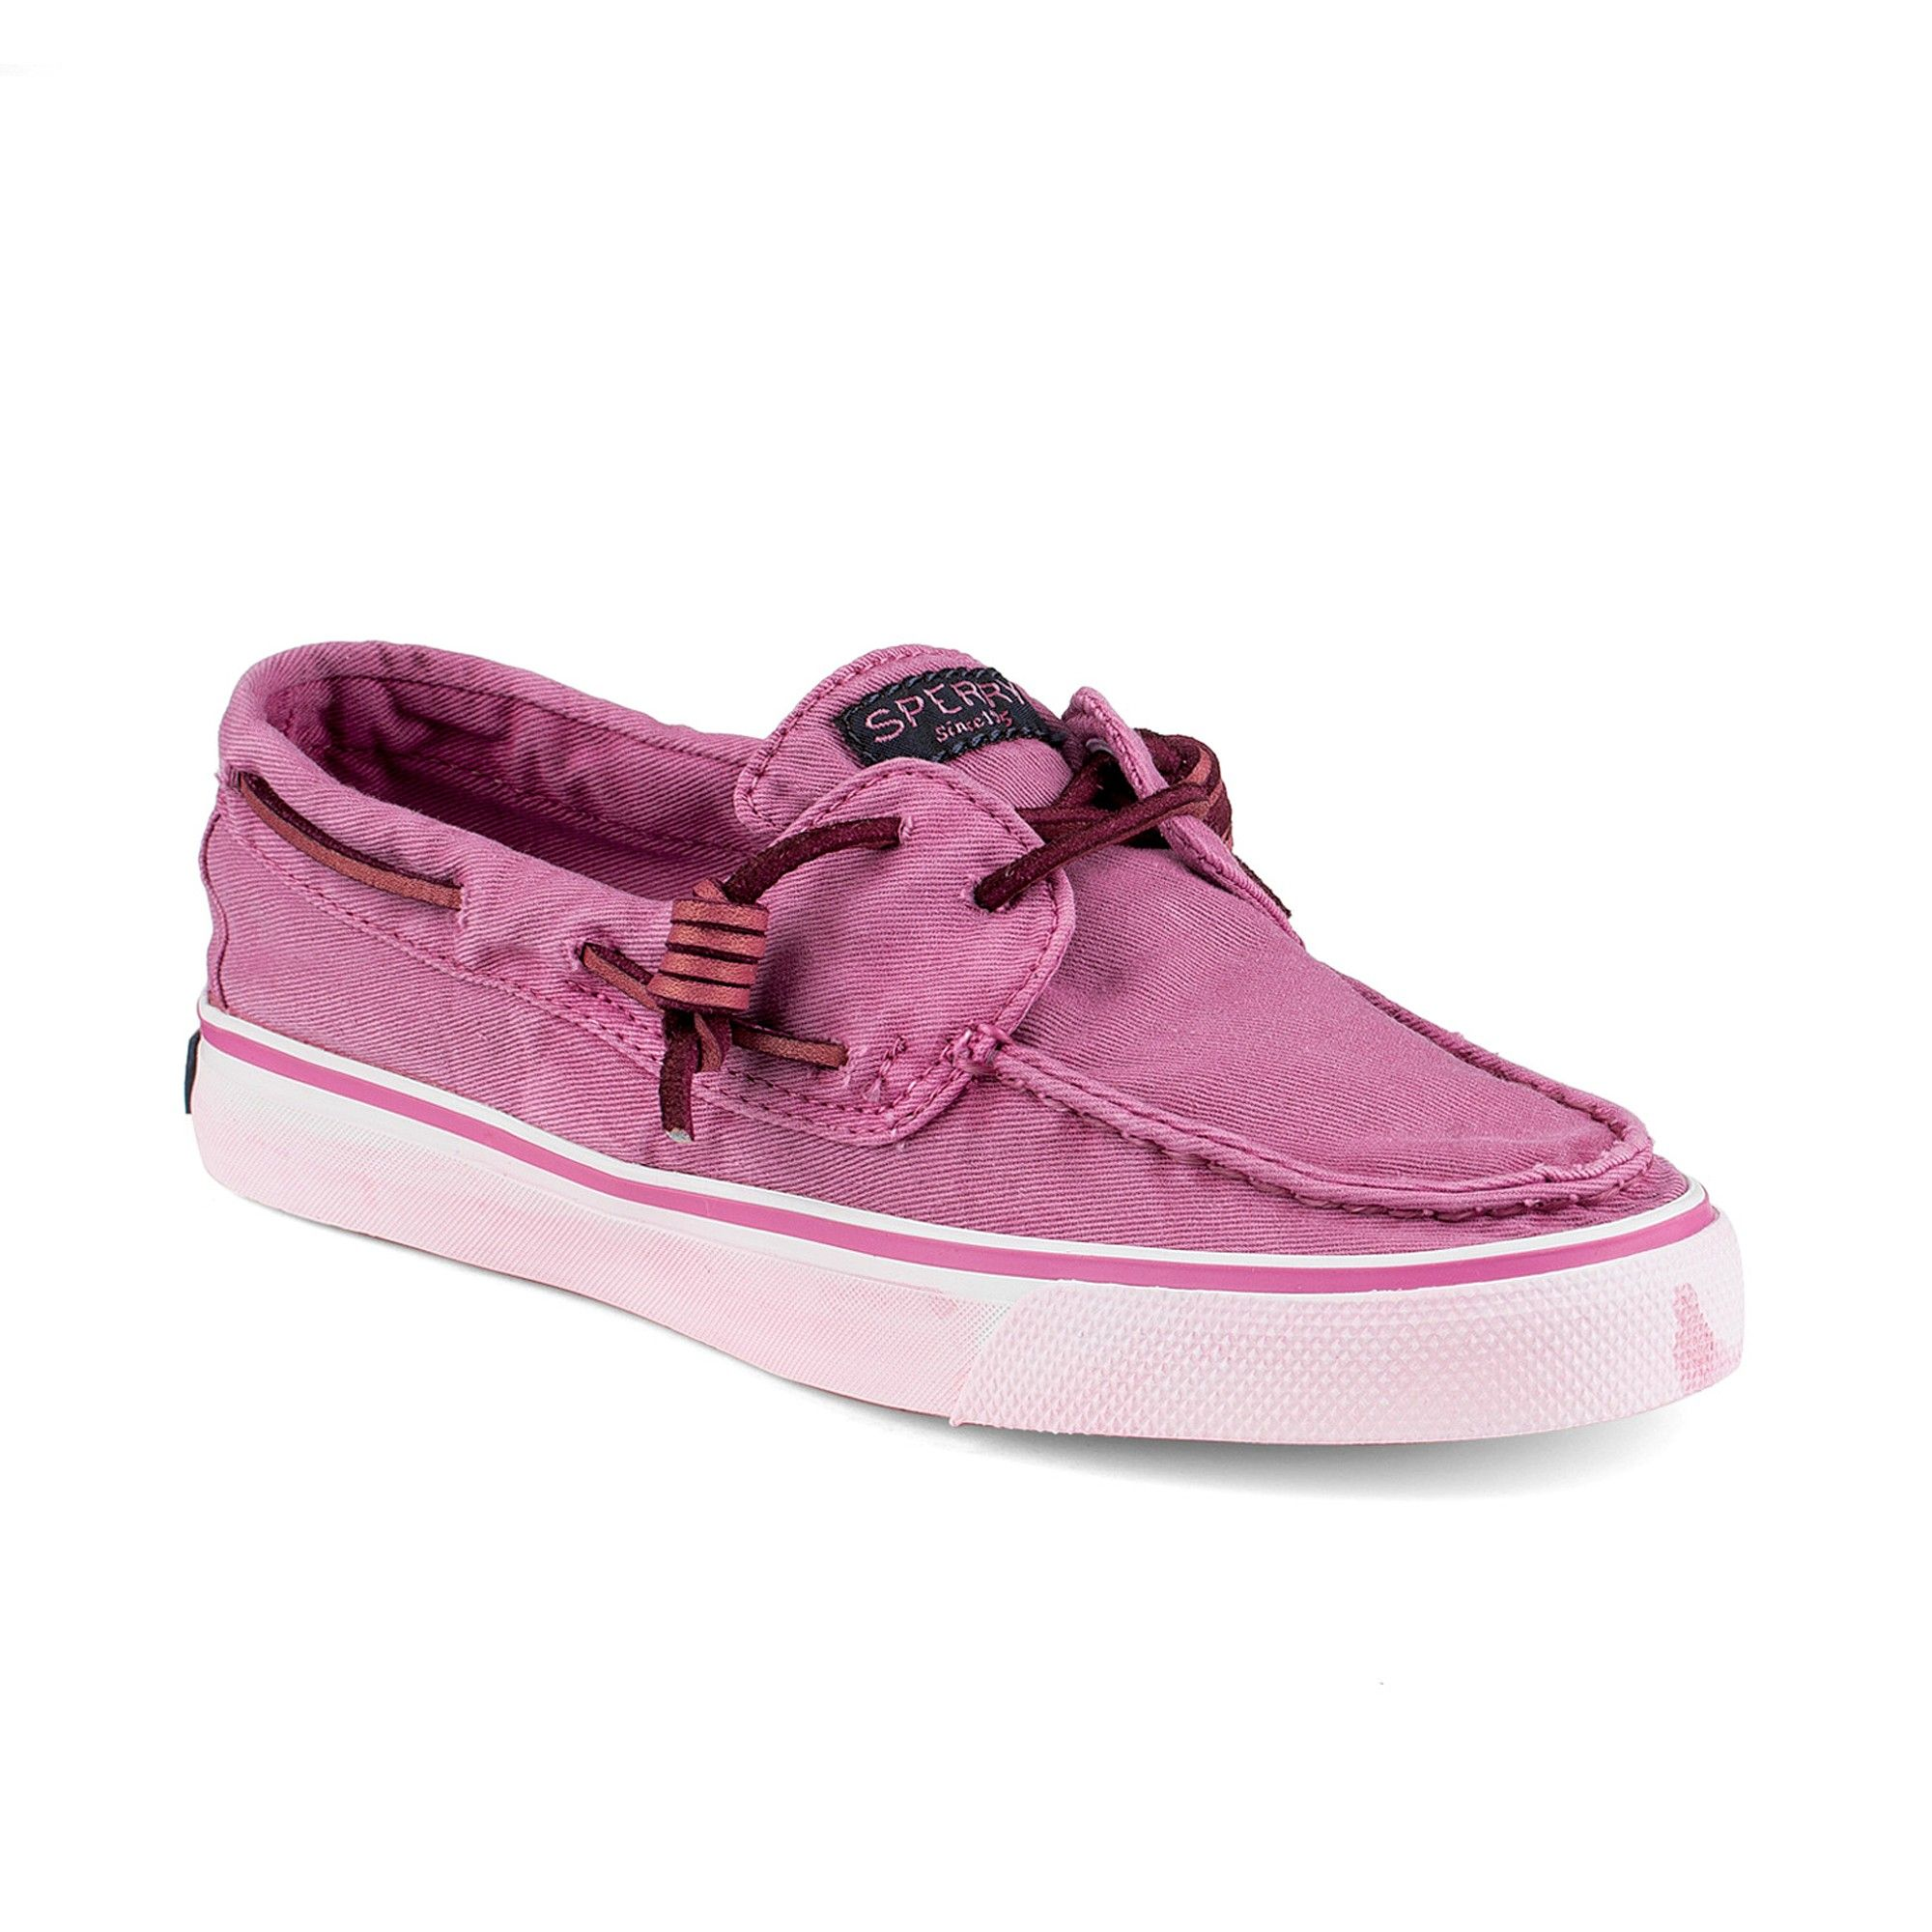 Sperry Bahama W Washed BRIGHT PINK